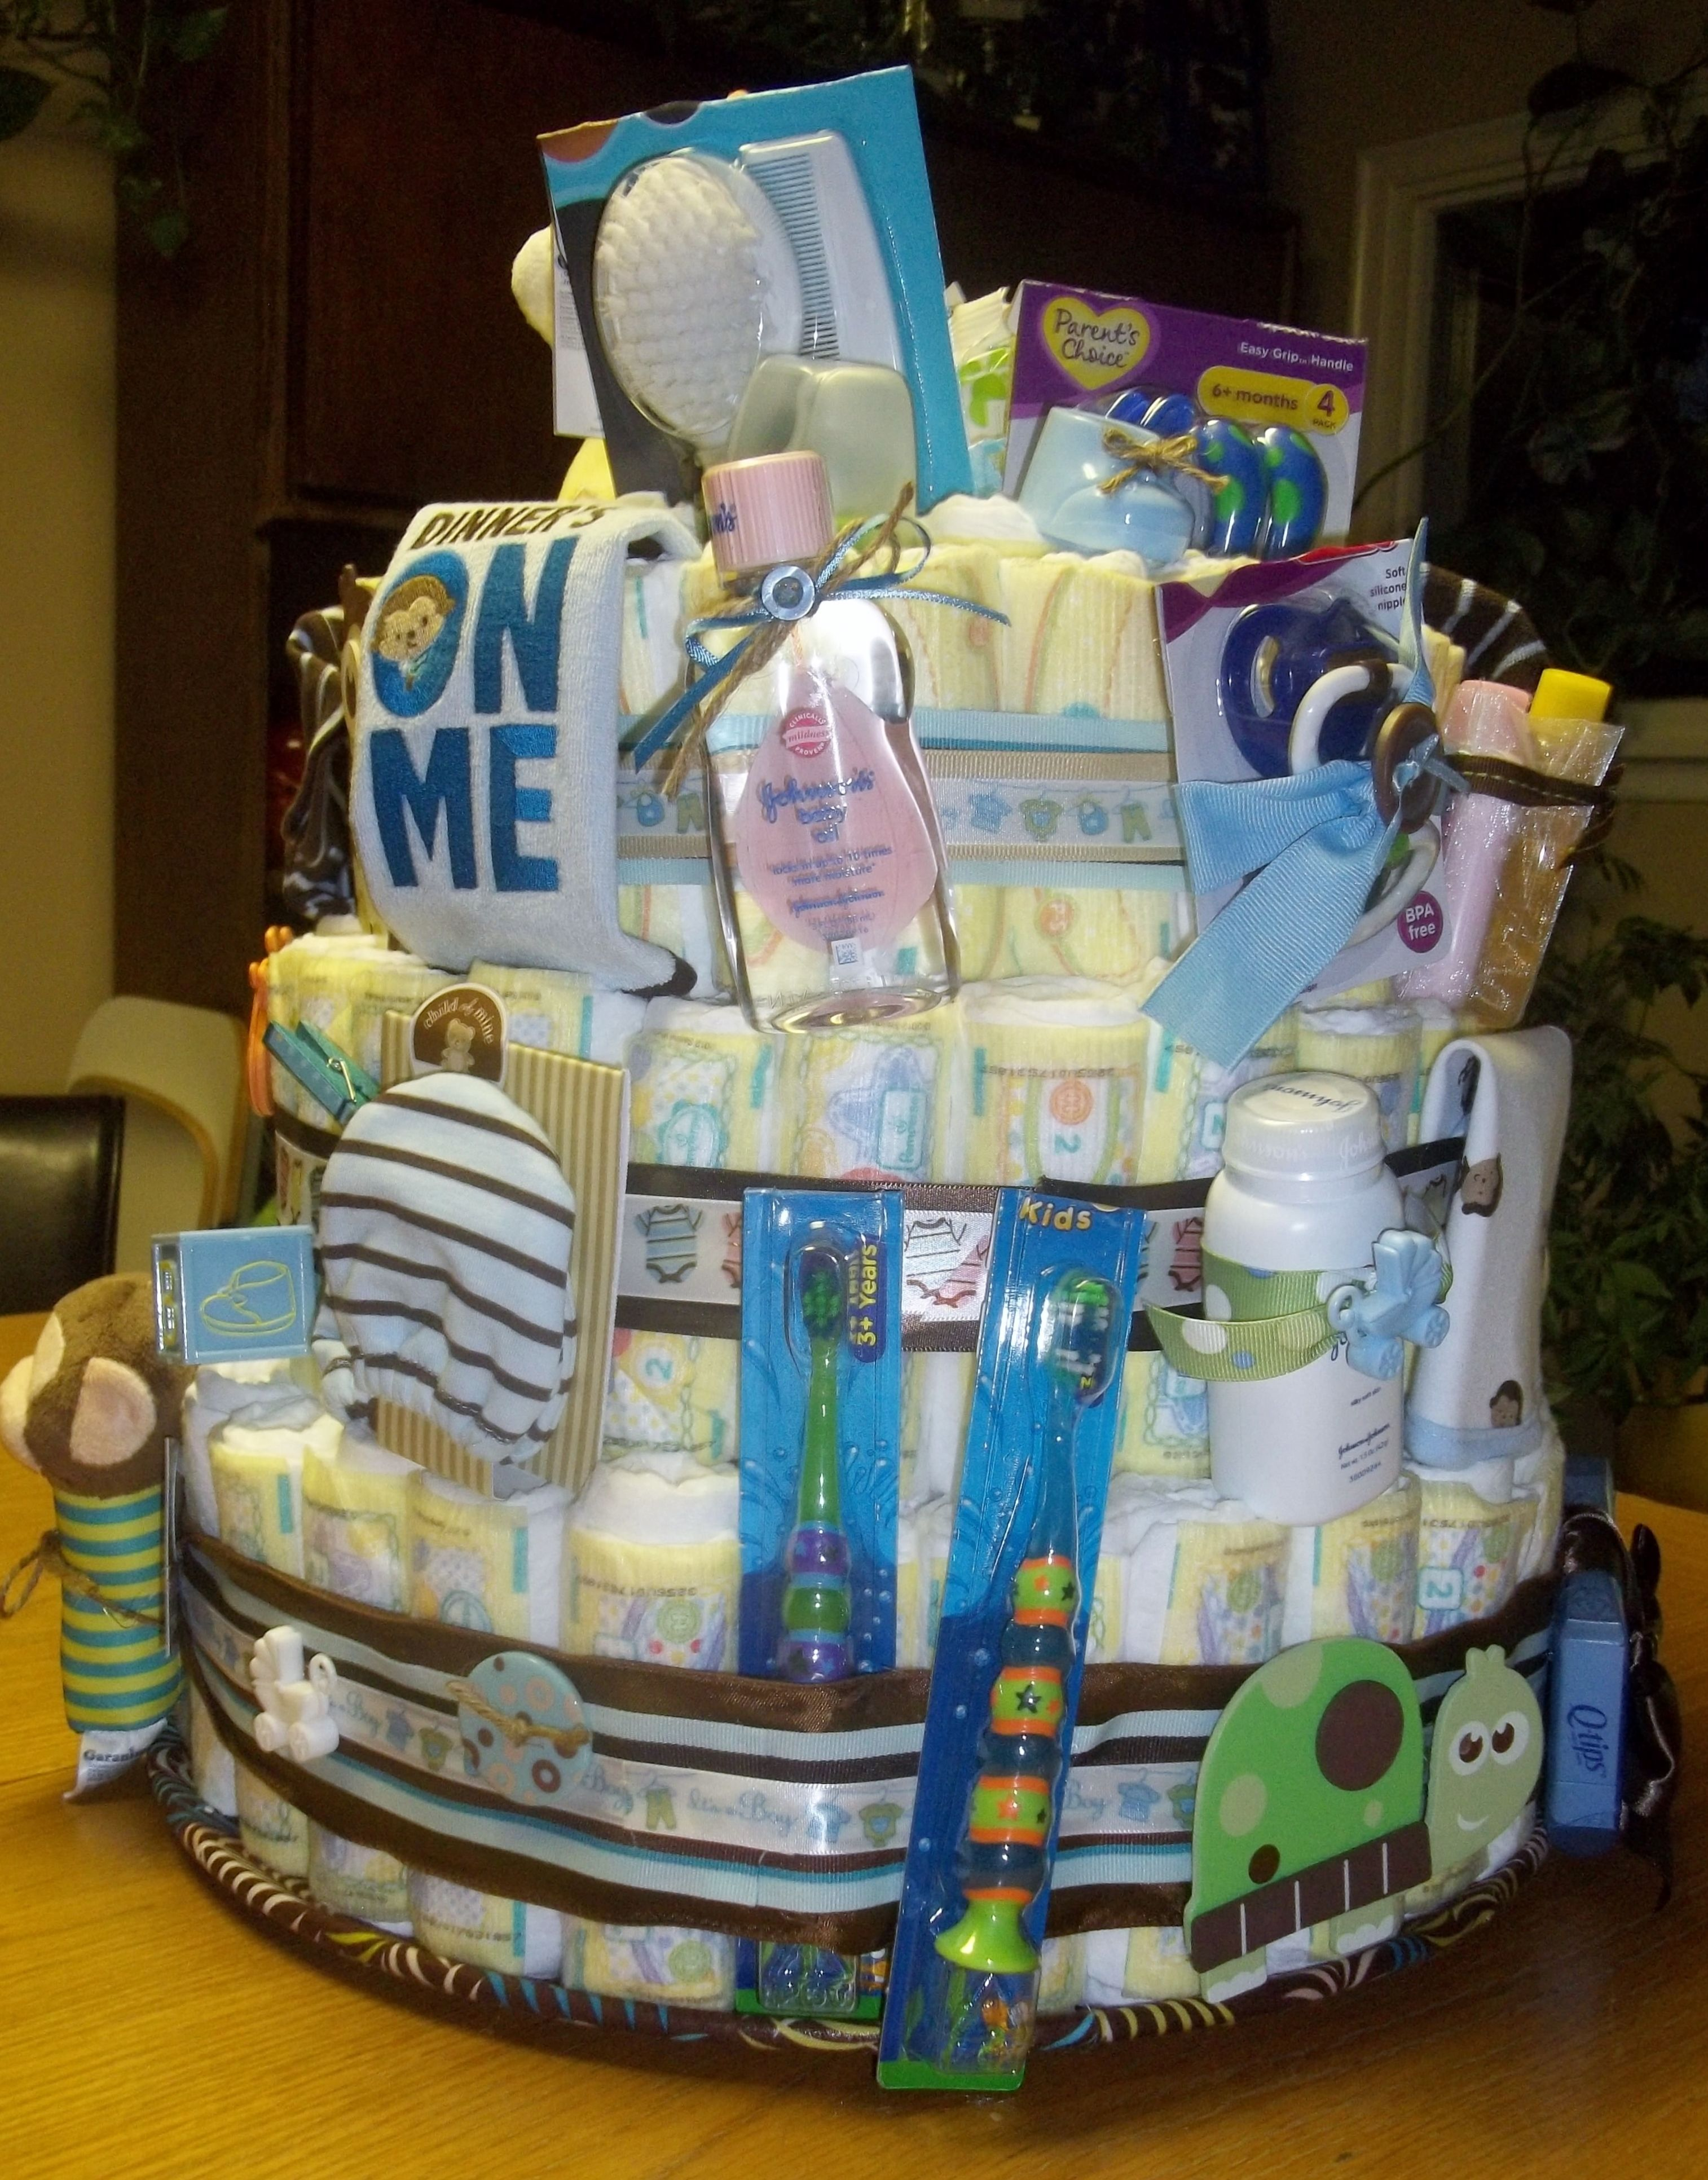 Another view of the diaper cake diaper cake baby gifts